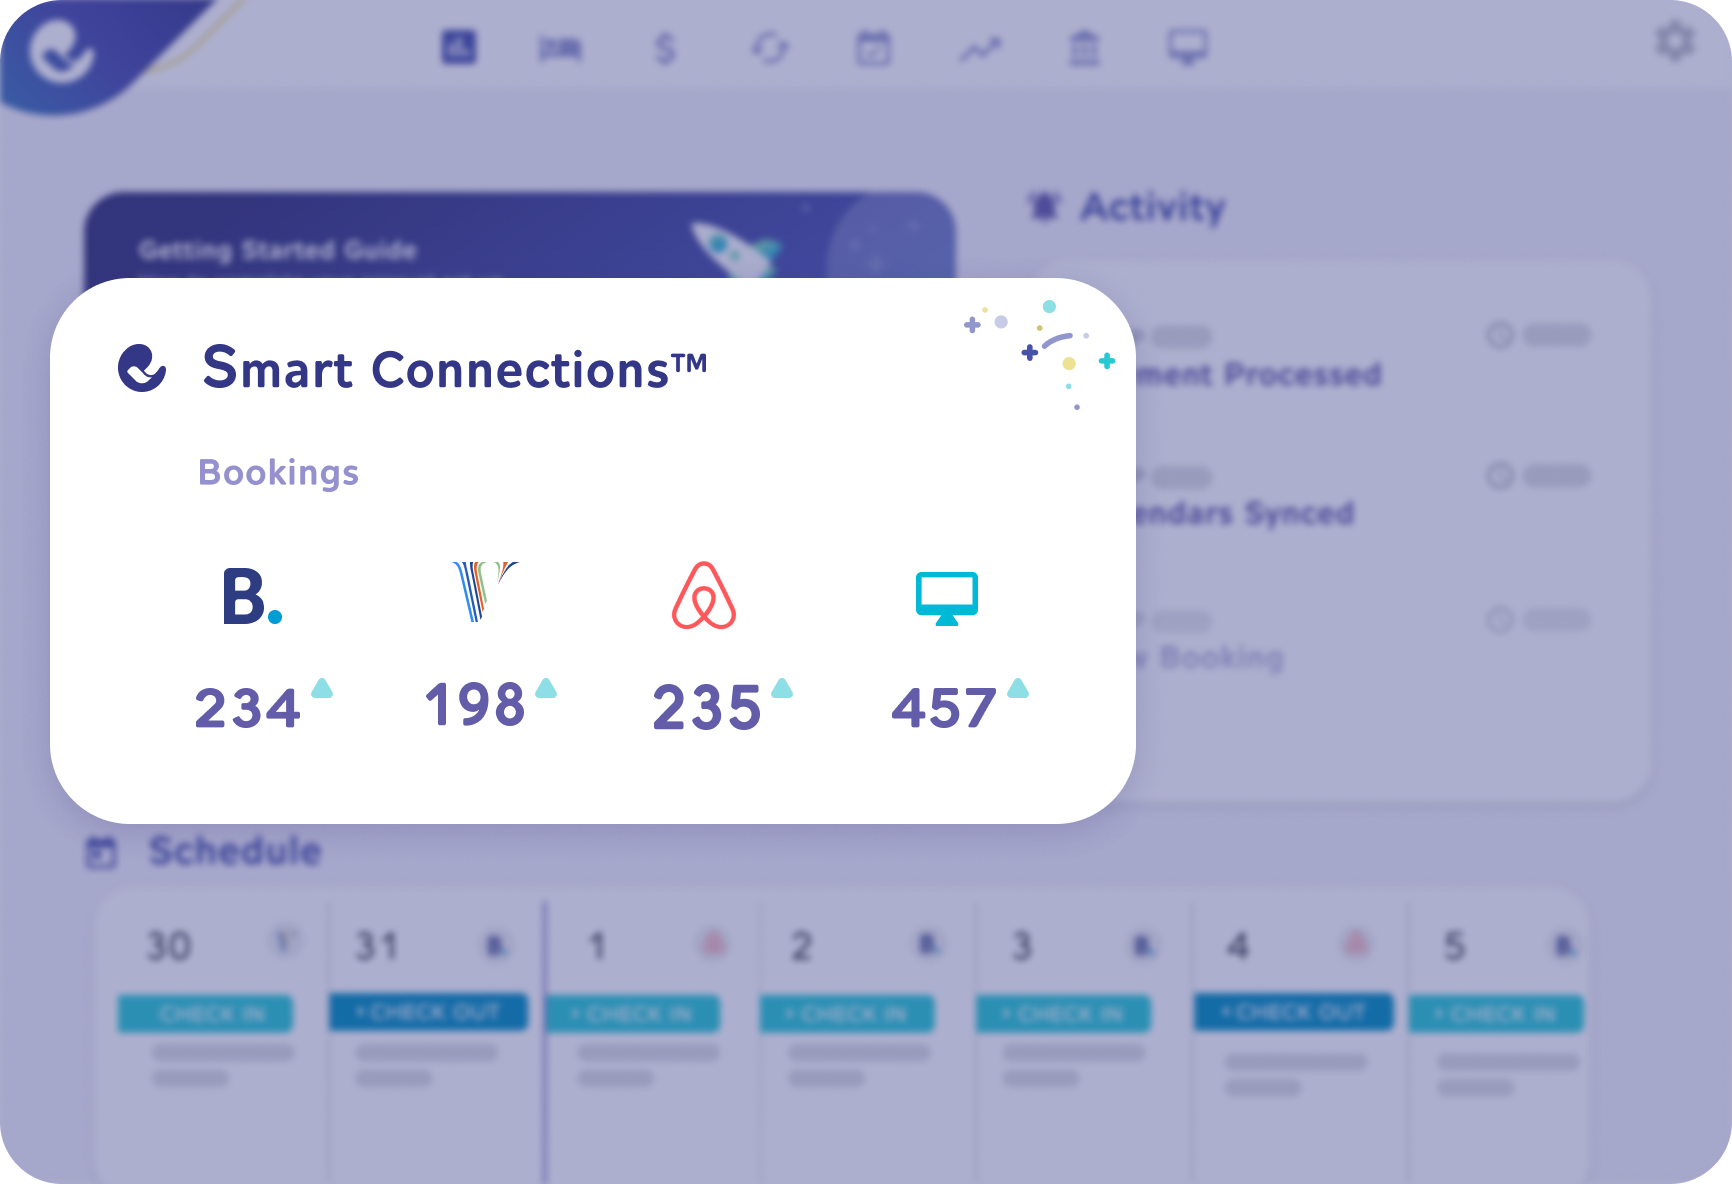 Smart Connections executing rules, payments and communications